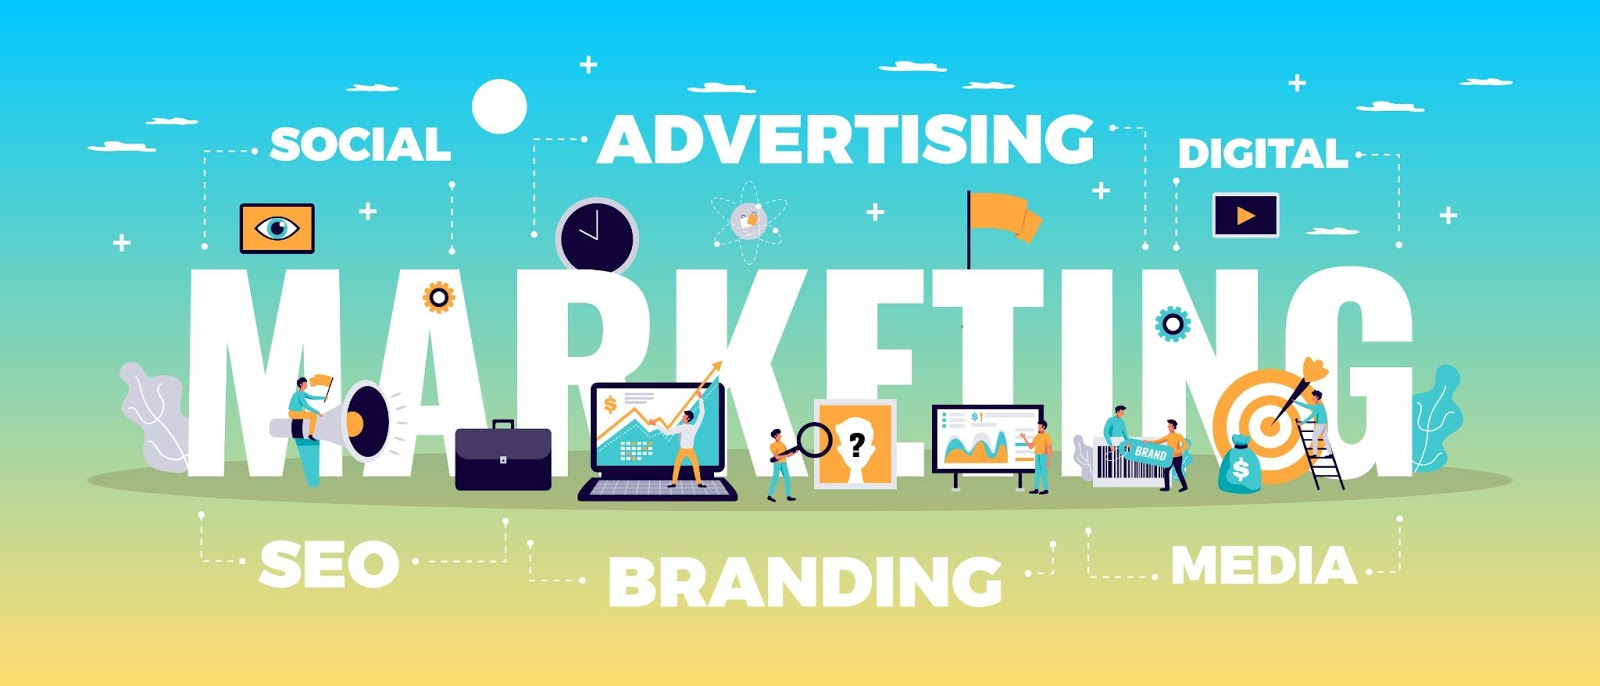 How digital marketing has made an impact on businesses in the last few years